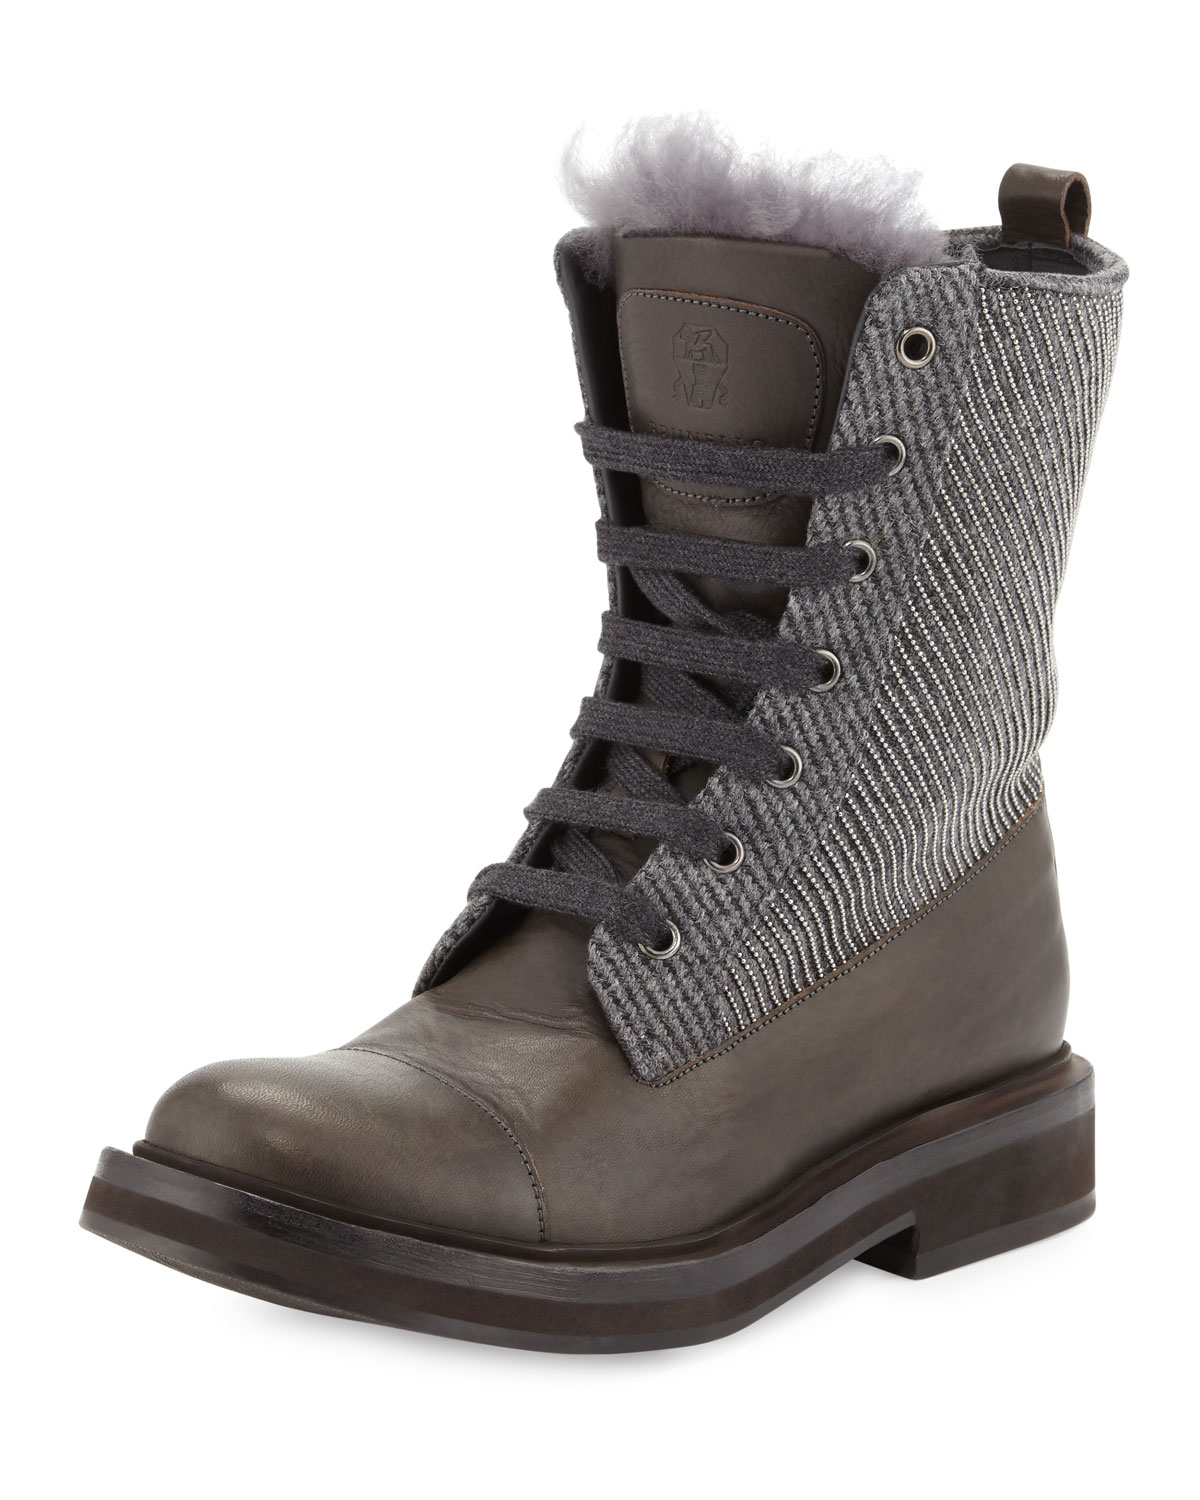 Fur-Trimmed Lace-Up Combat Boot, Graphite